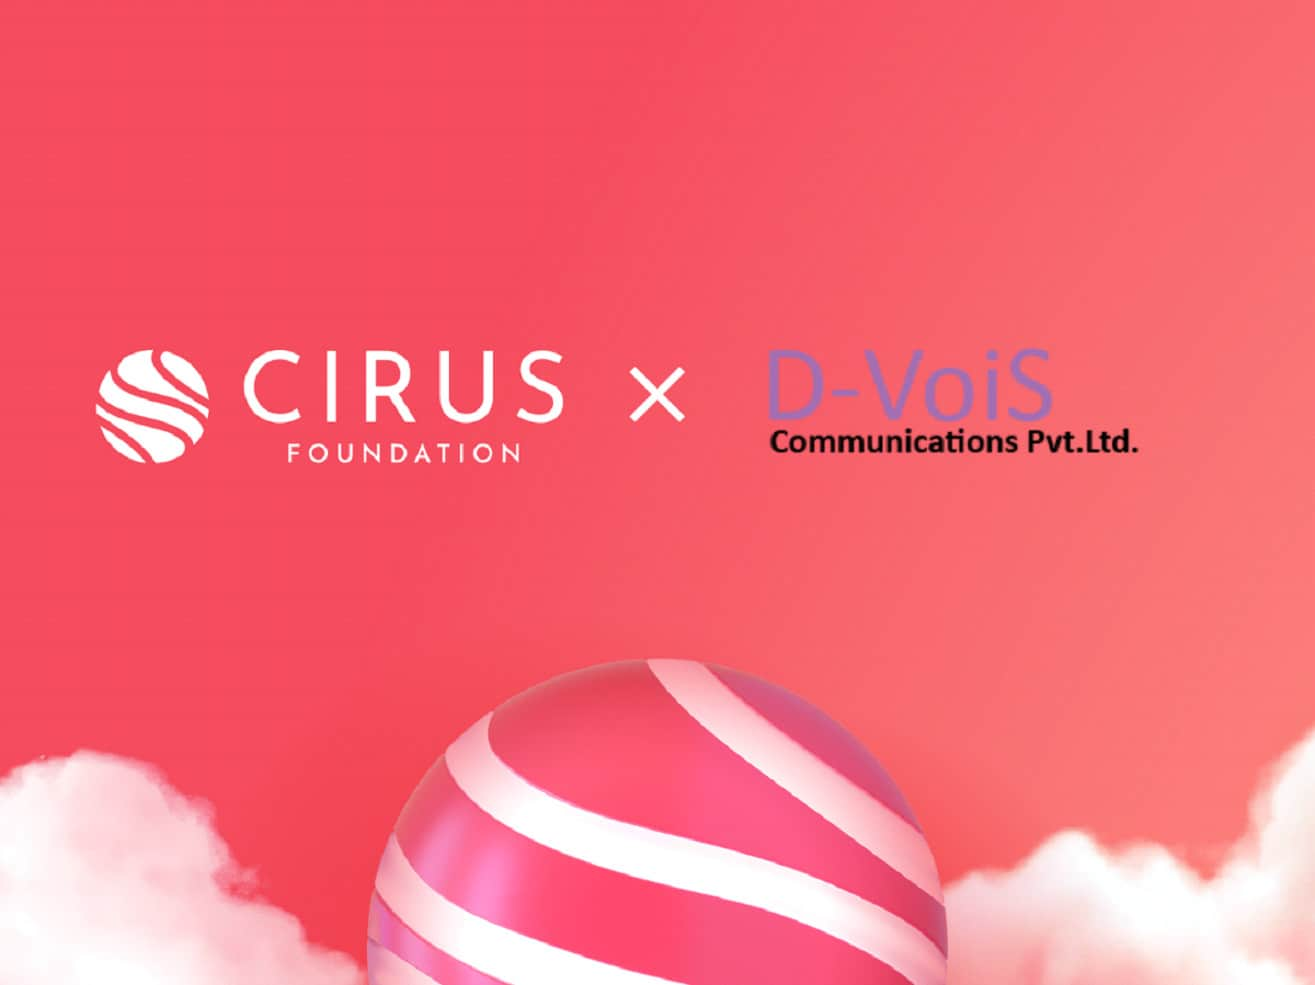 Cirus Foundation Contract Deployment with D-VoiS